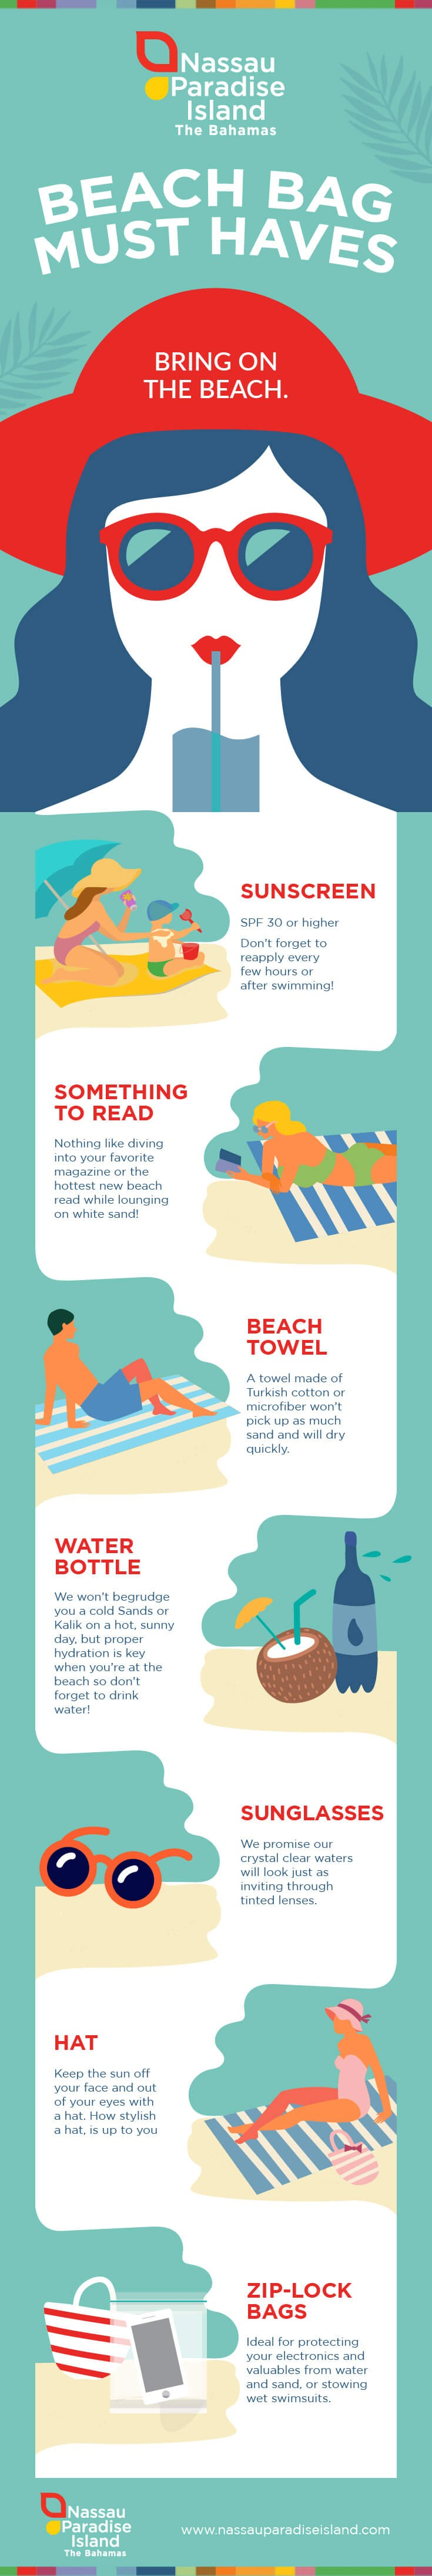 An infographic of items to pack in your beach bag on vacation.